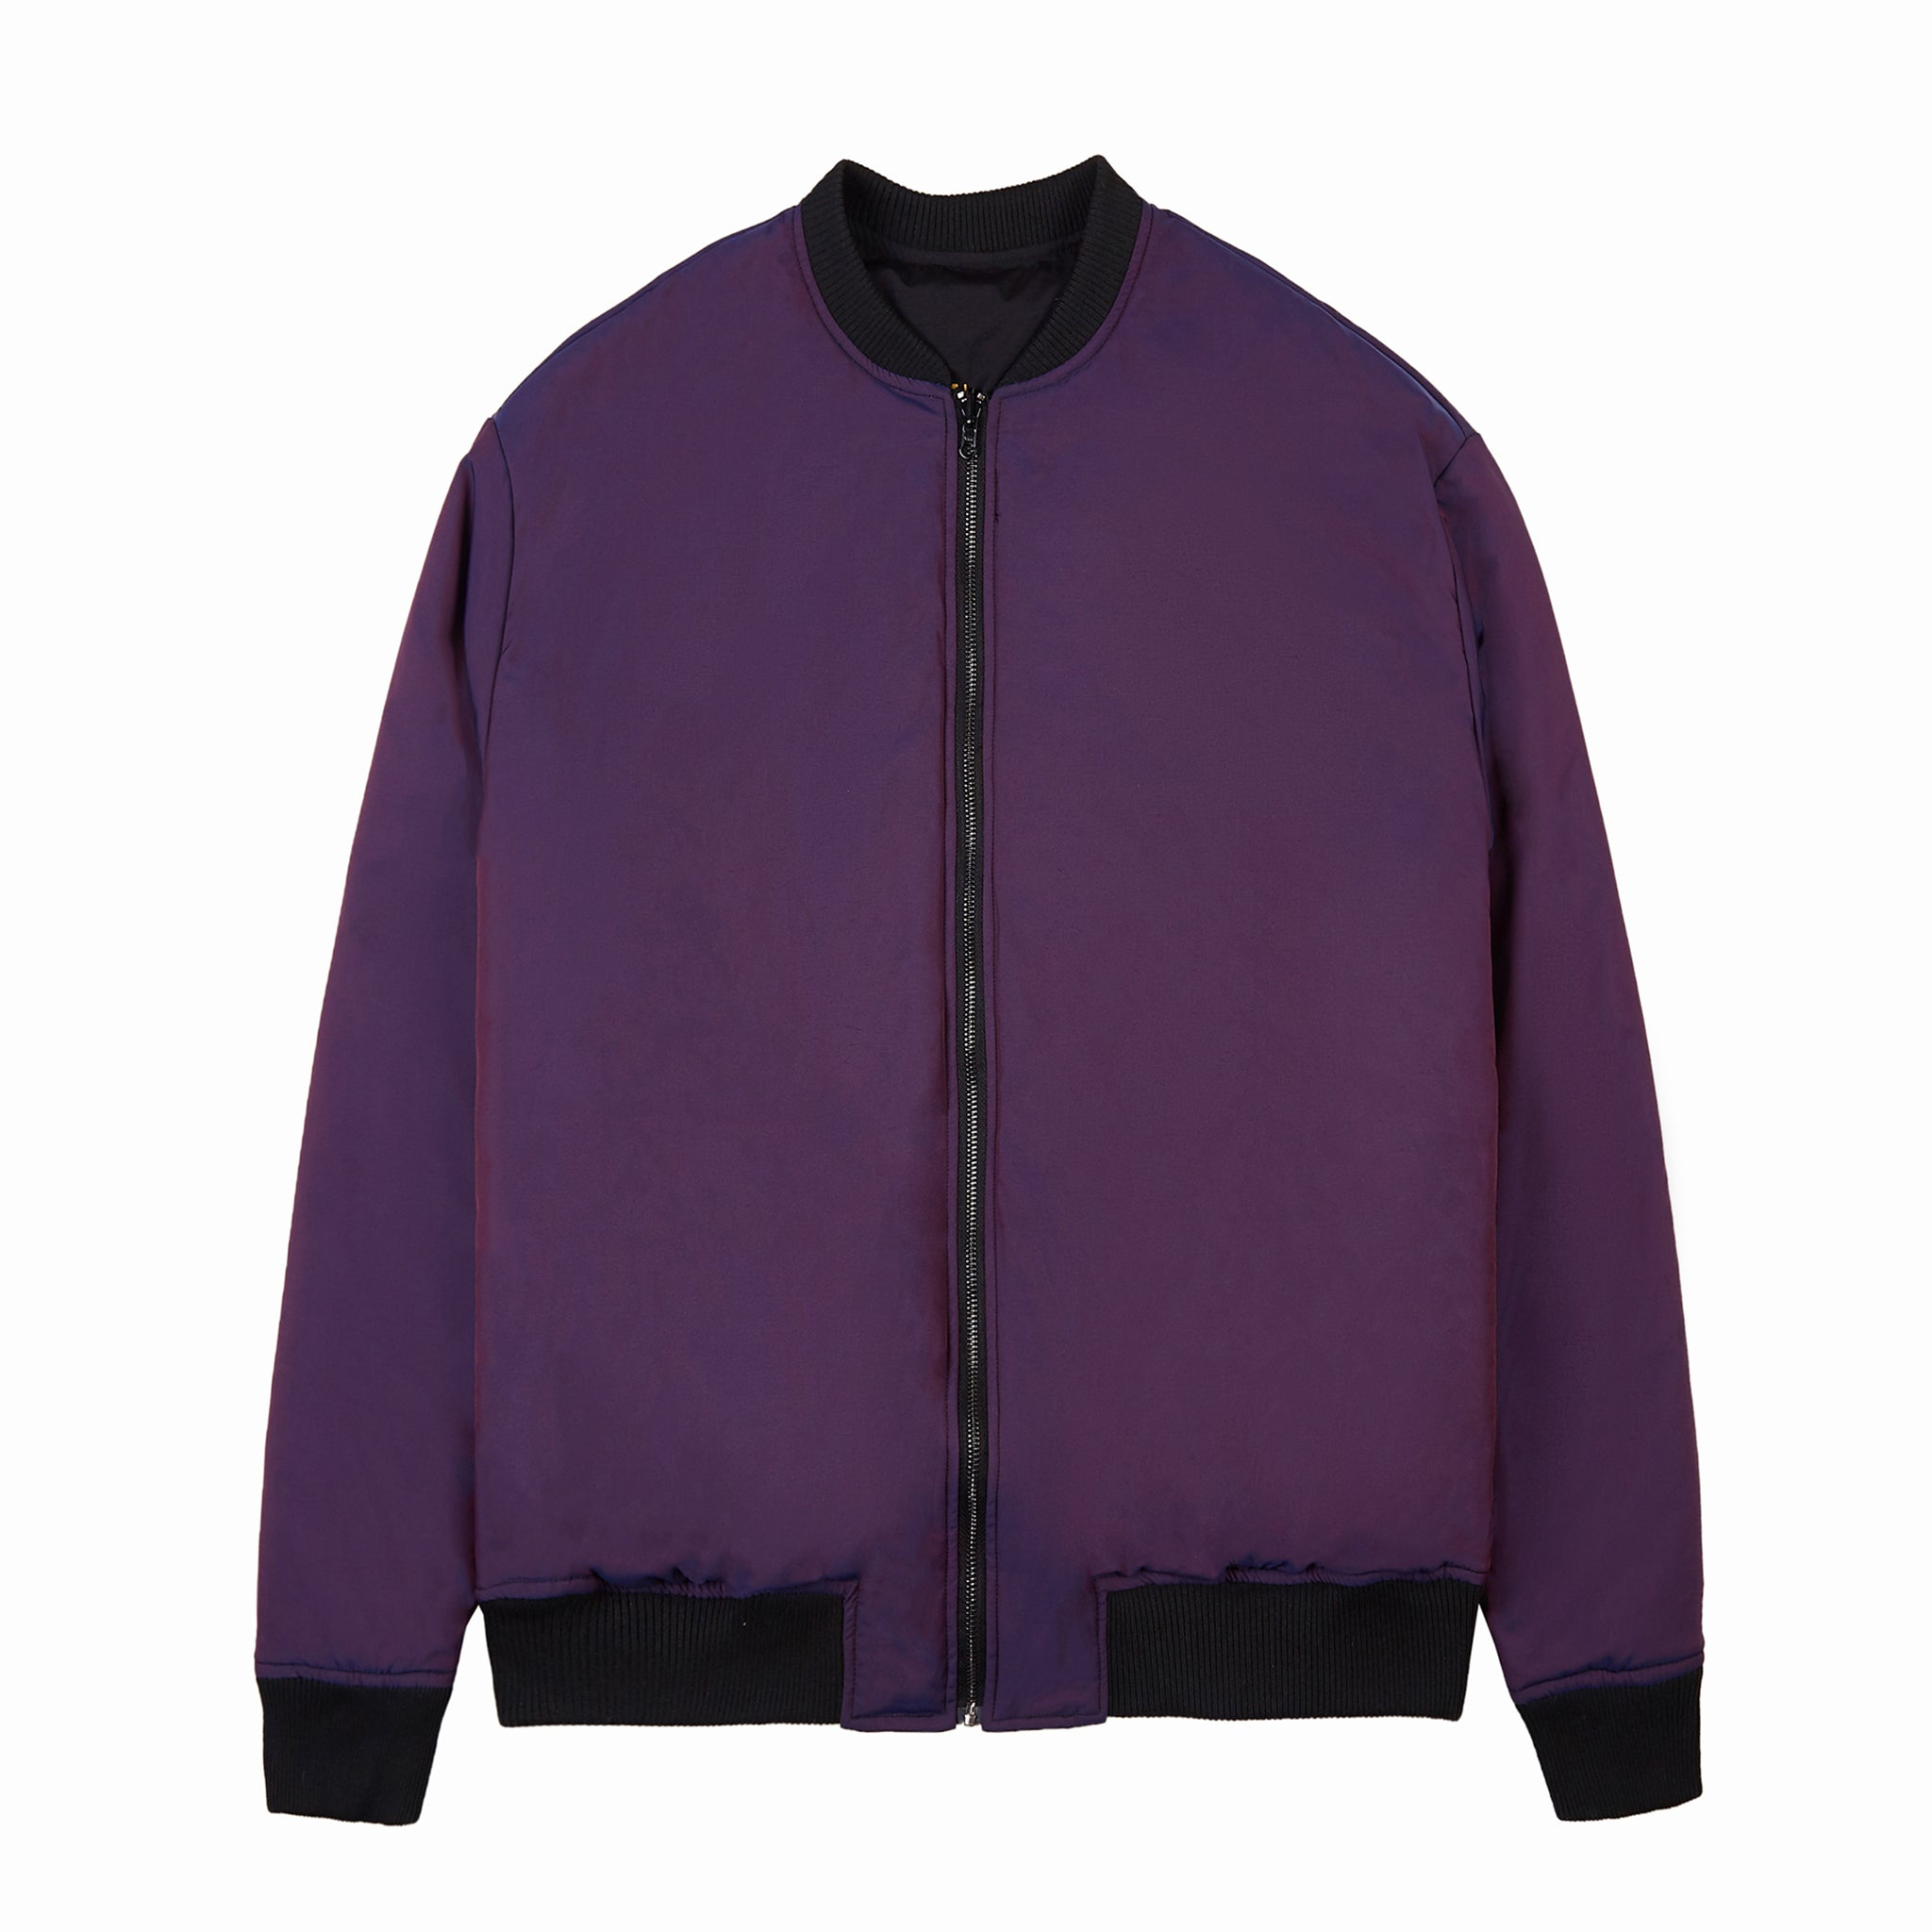 LFD Two-Tone Bomber